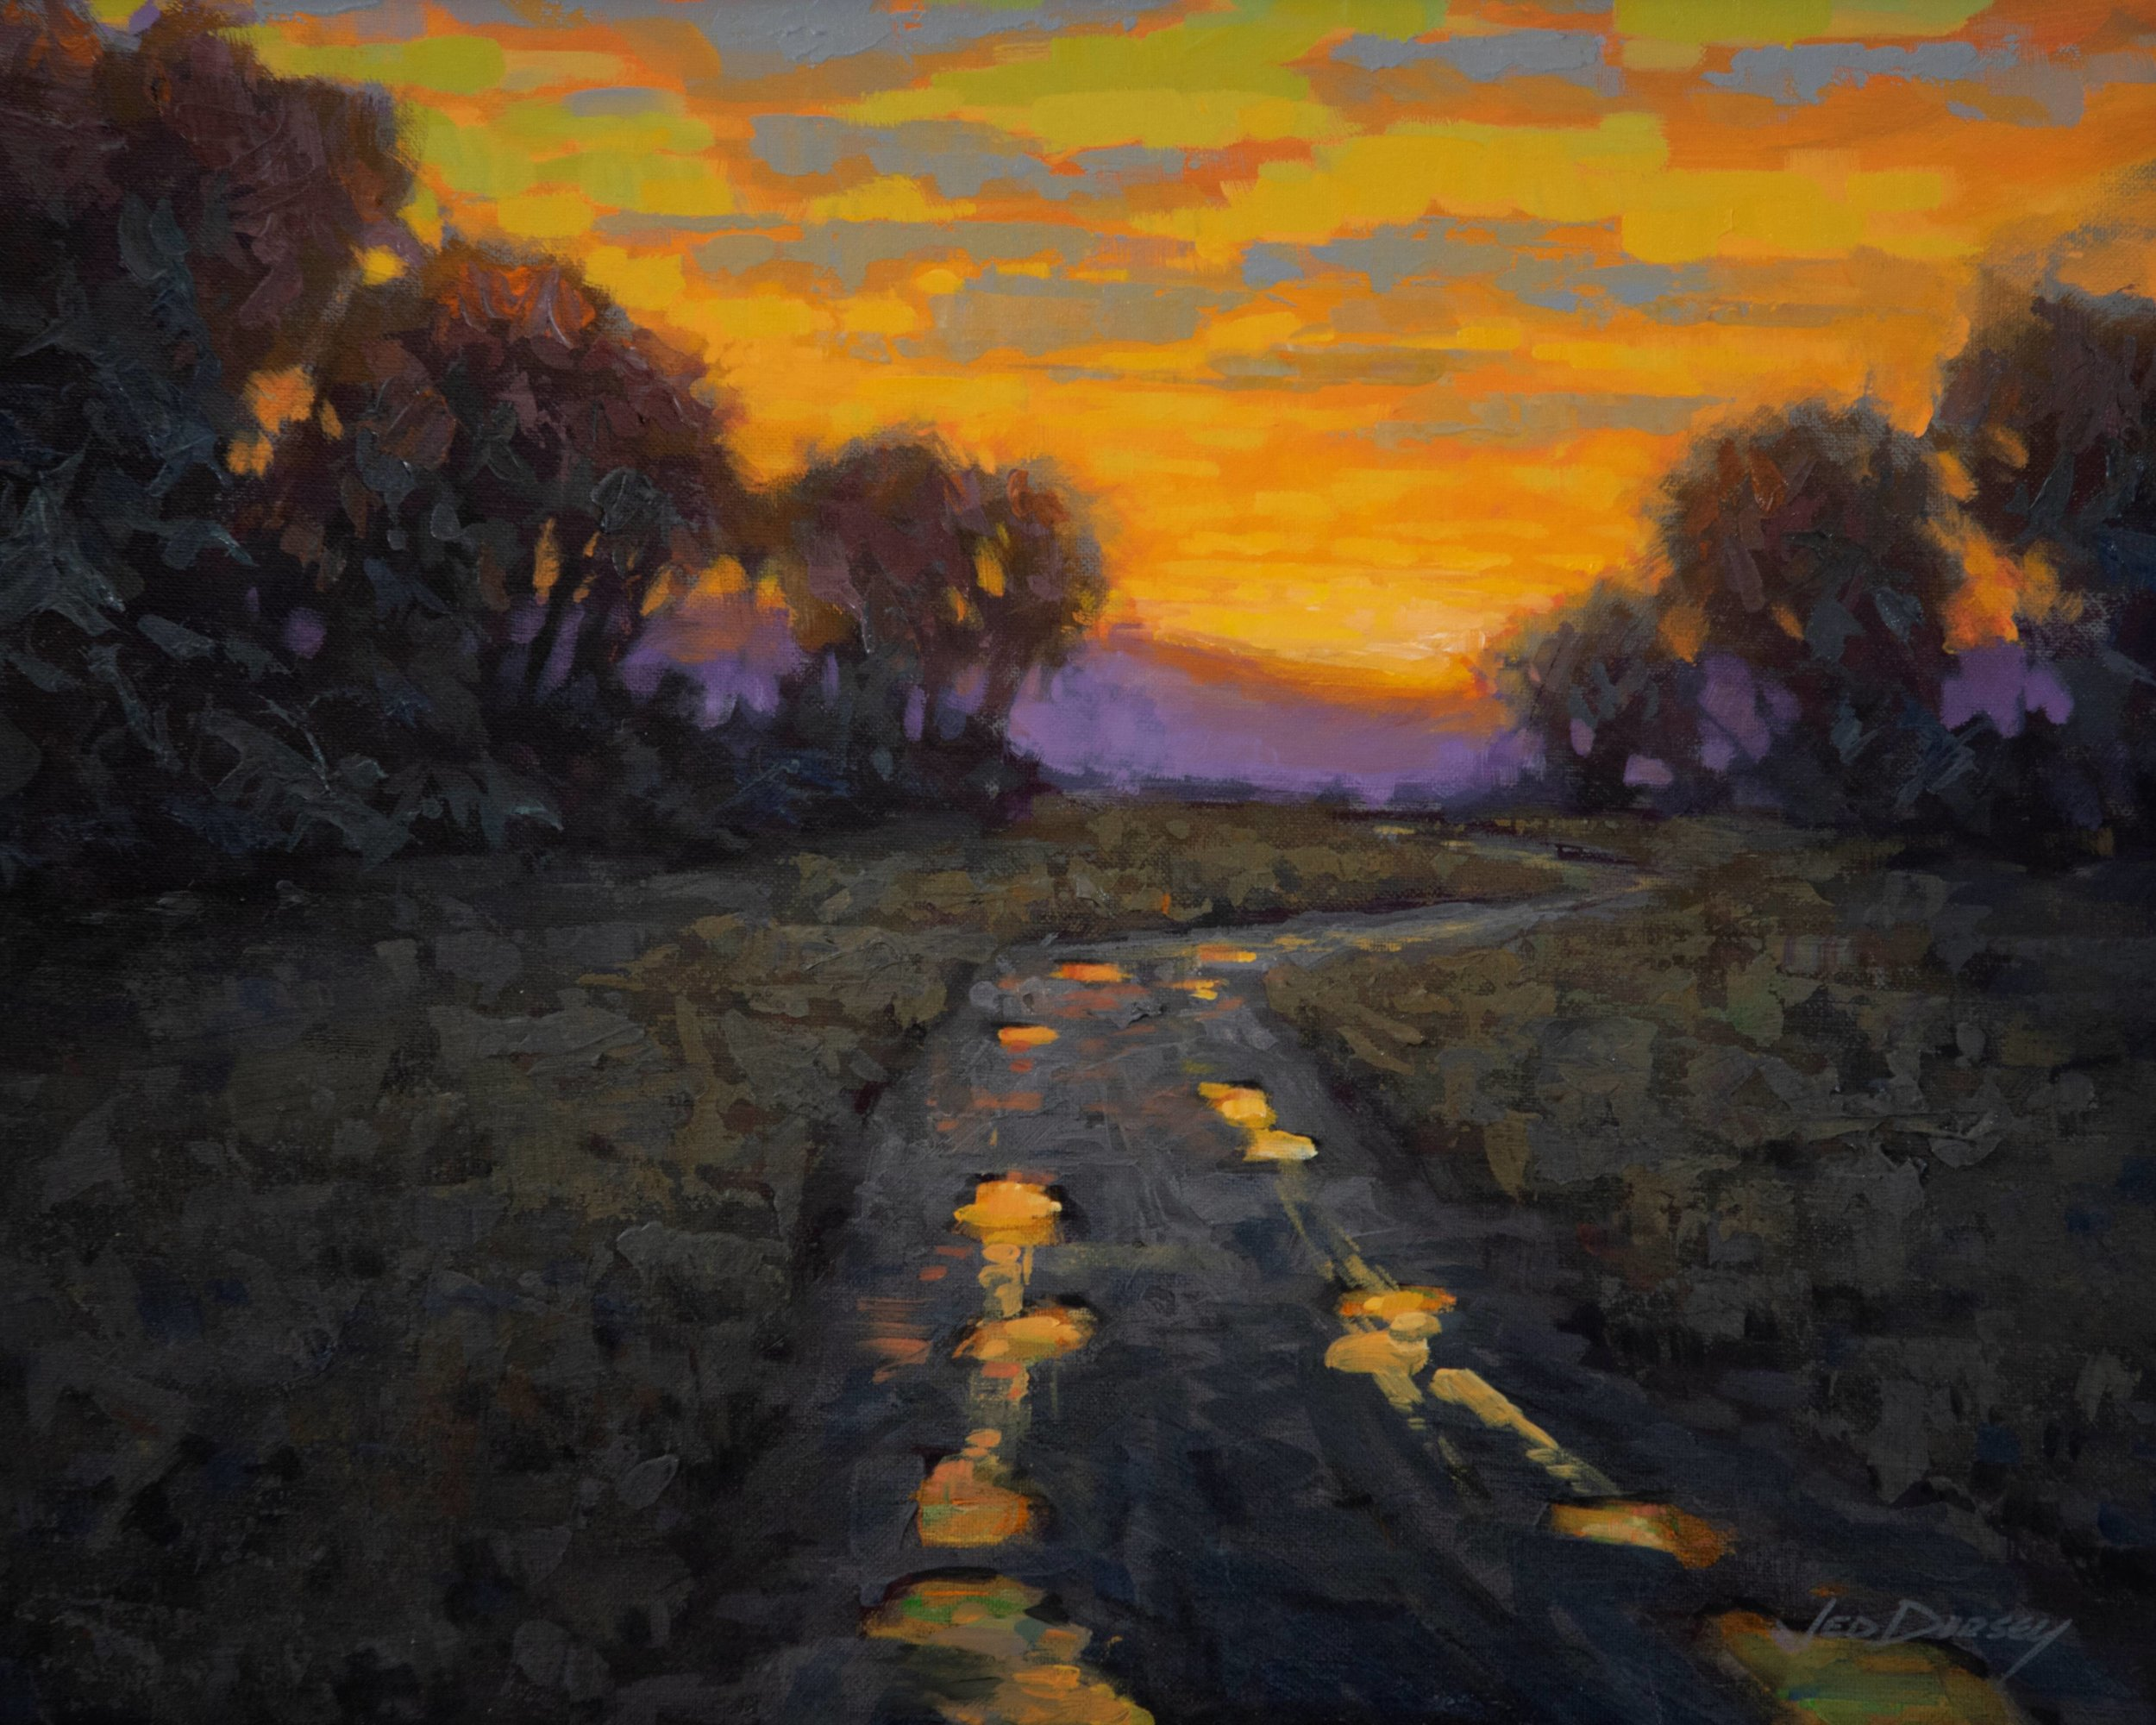 Jed Dorsey_Evening Glow, Country Road_16x20_fr21x25_960.jpg